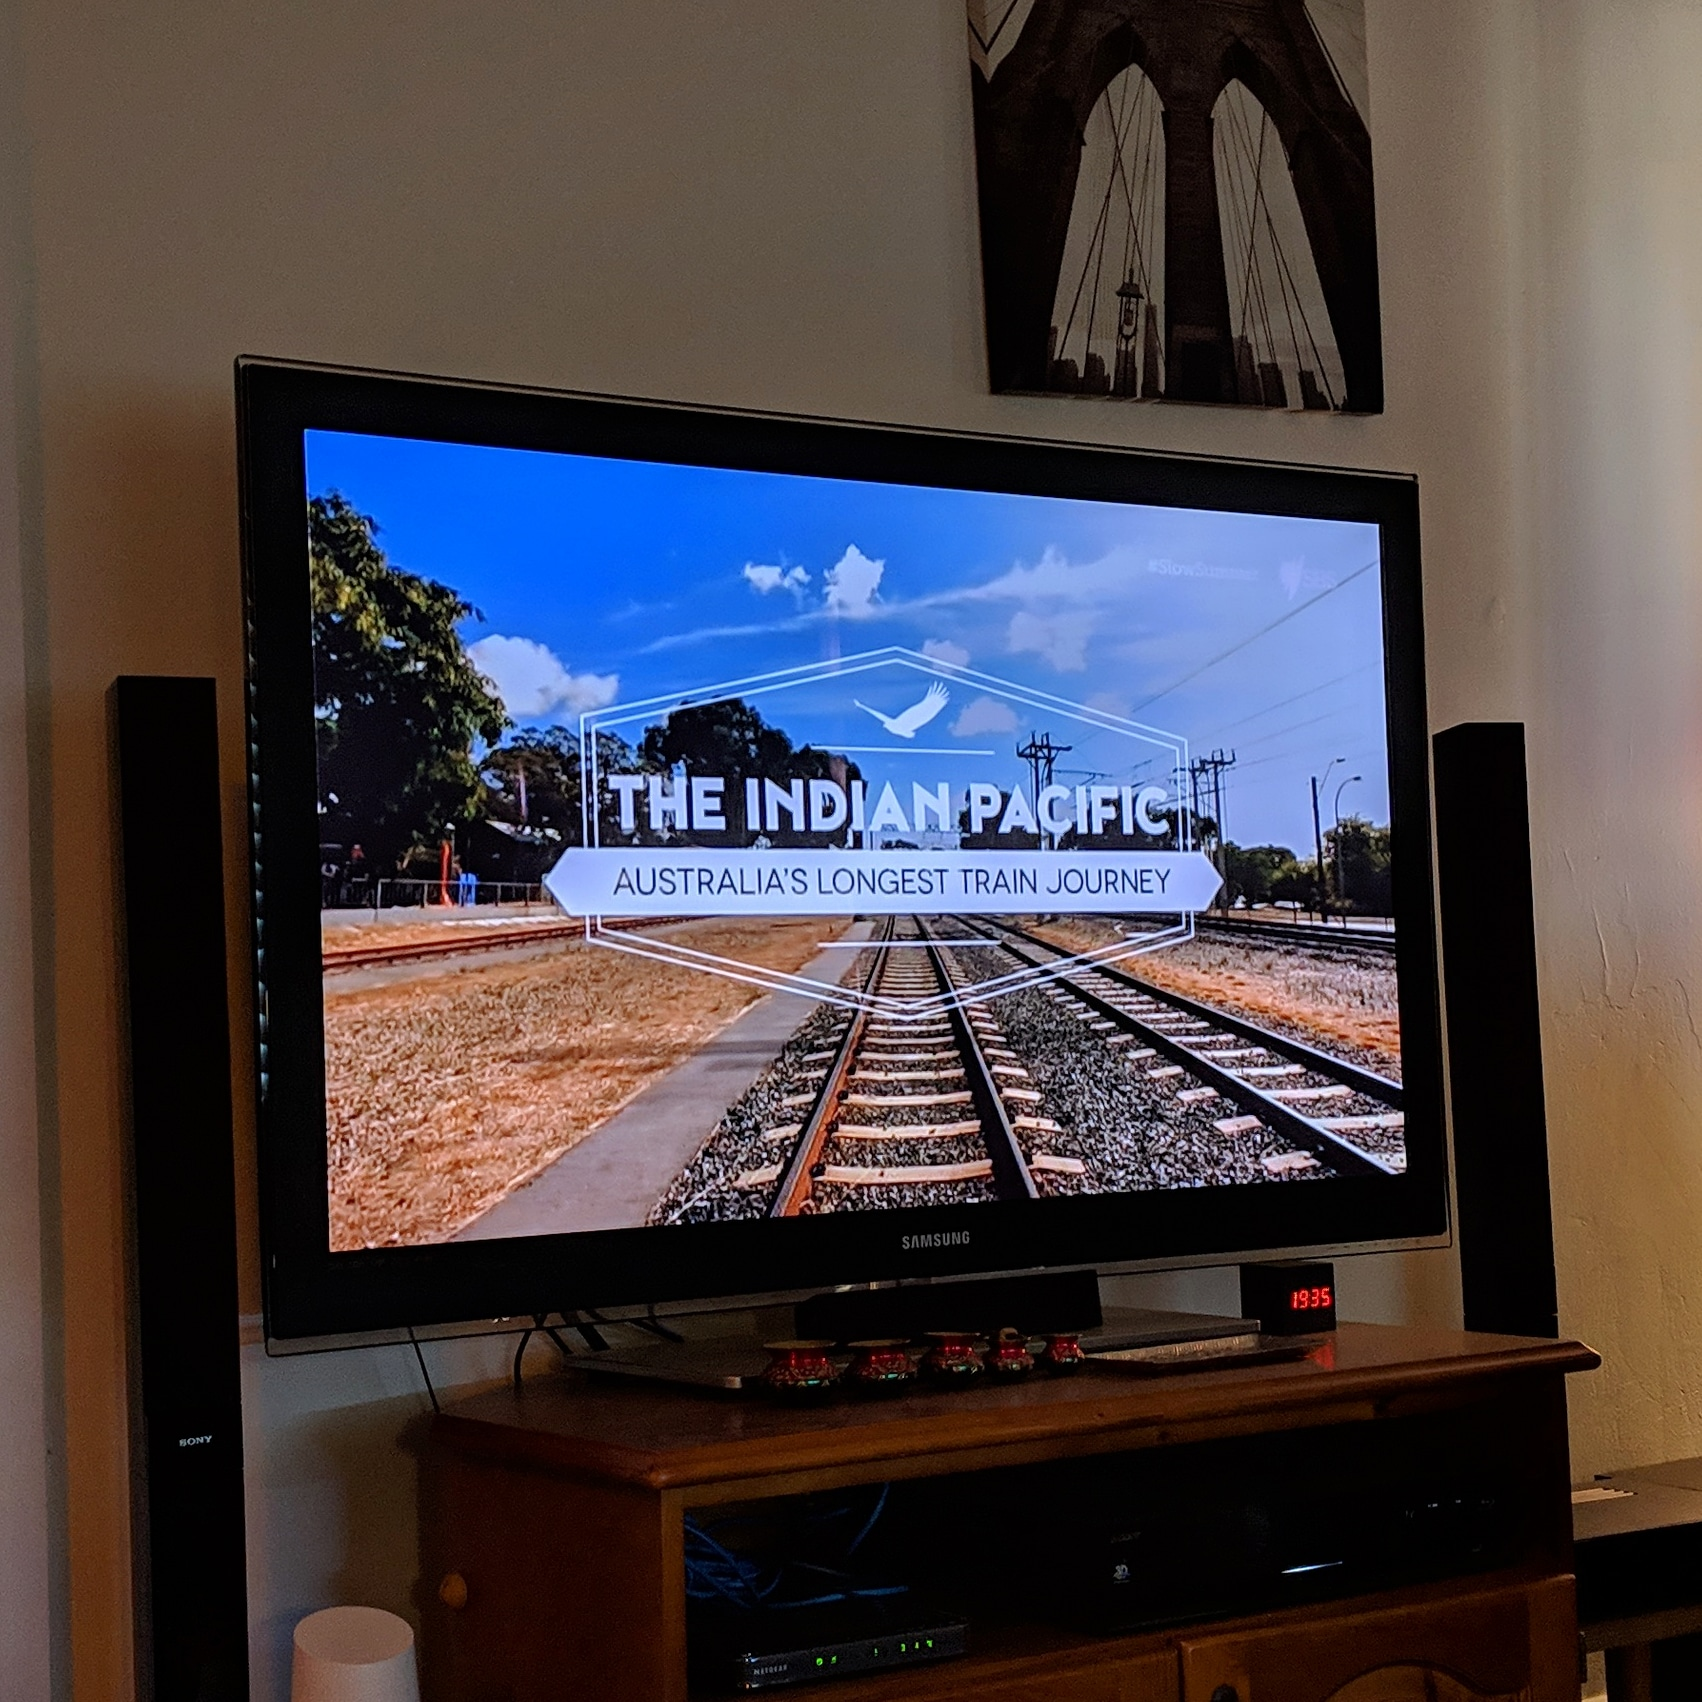 All set for a #SlowSummer with the Indian Pacific on SBS :) #SlowTV #sundaynight